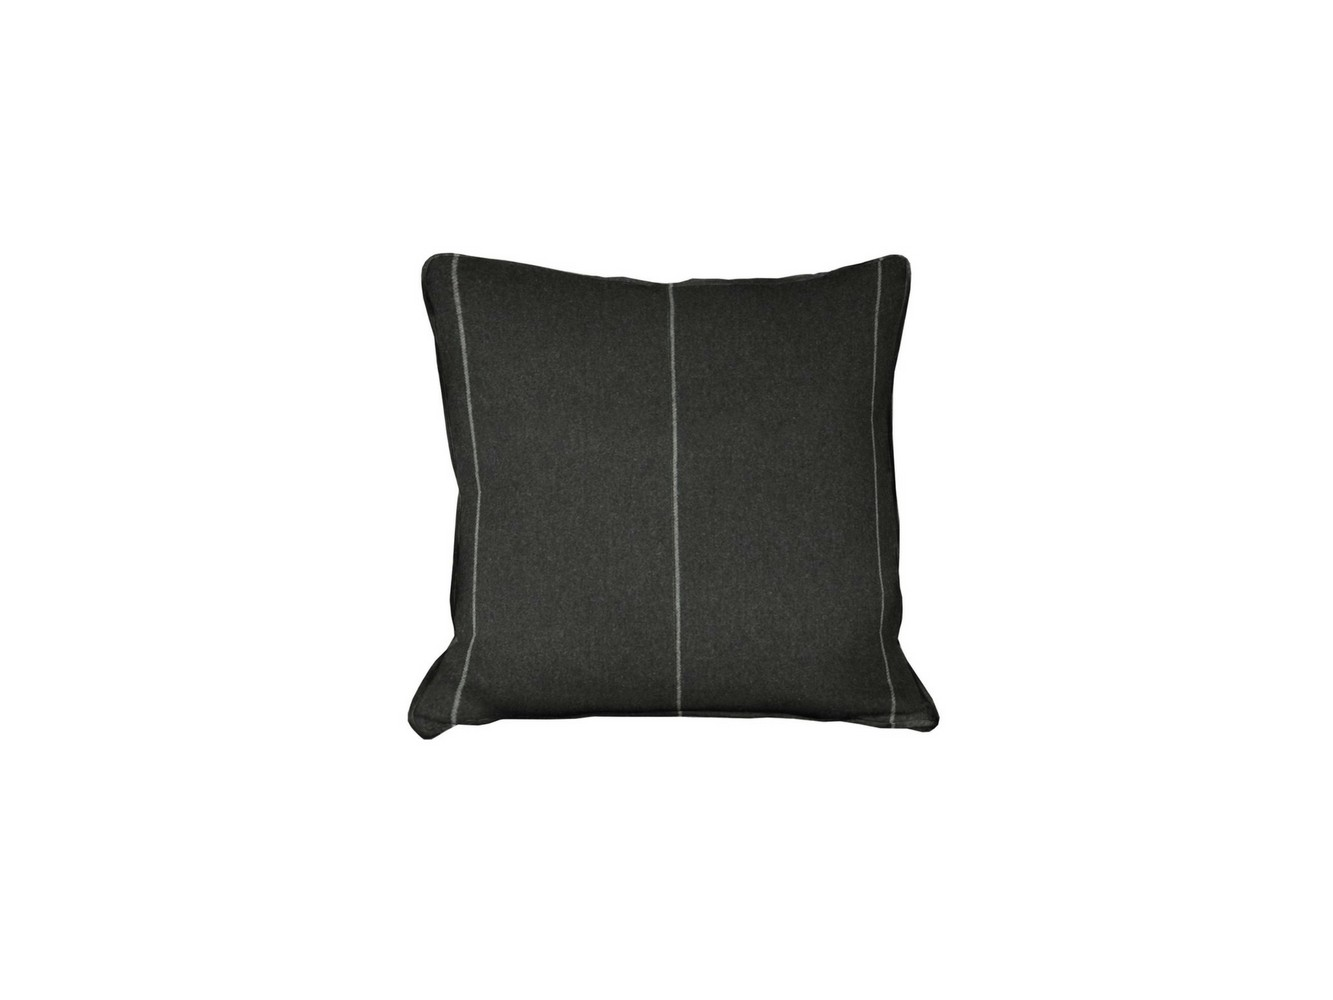 Extra Scatter Cushions - Fabric Savile Charcoal